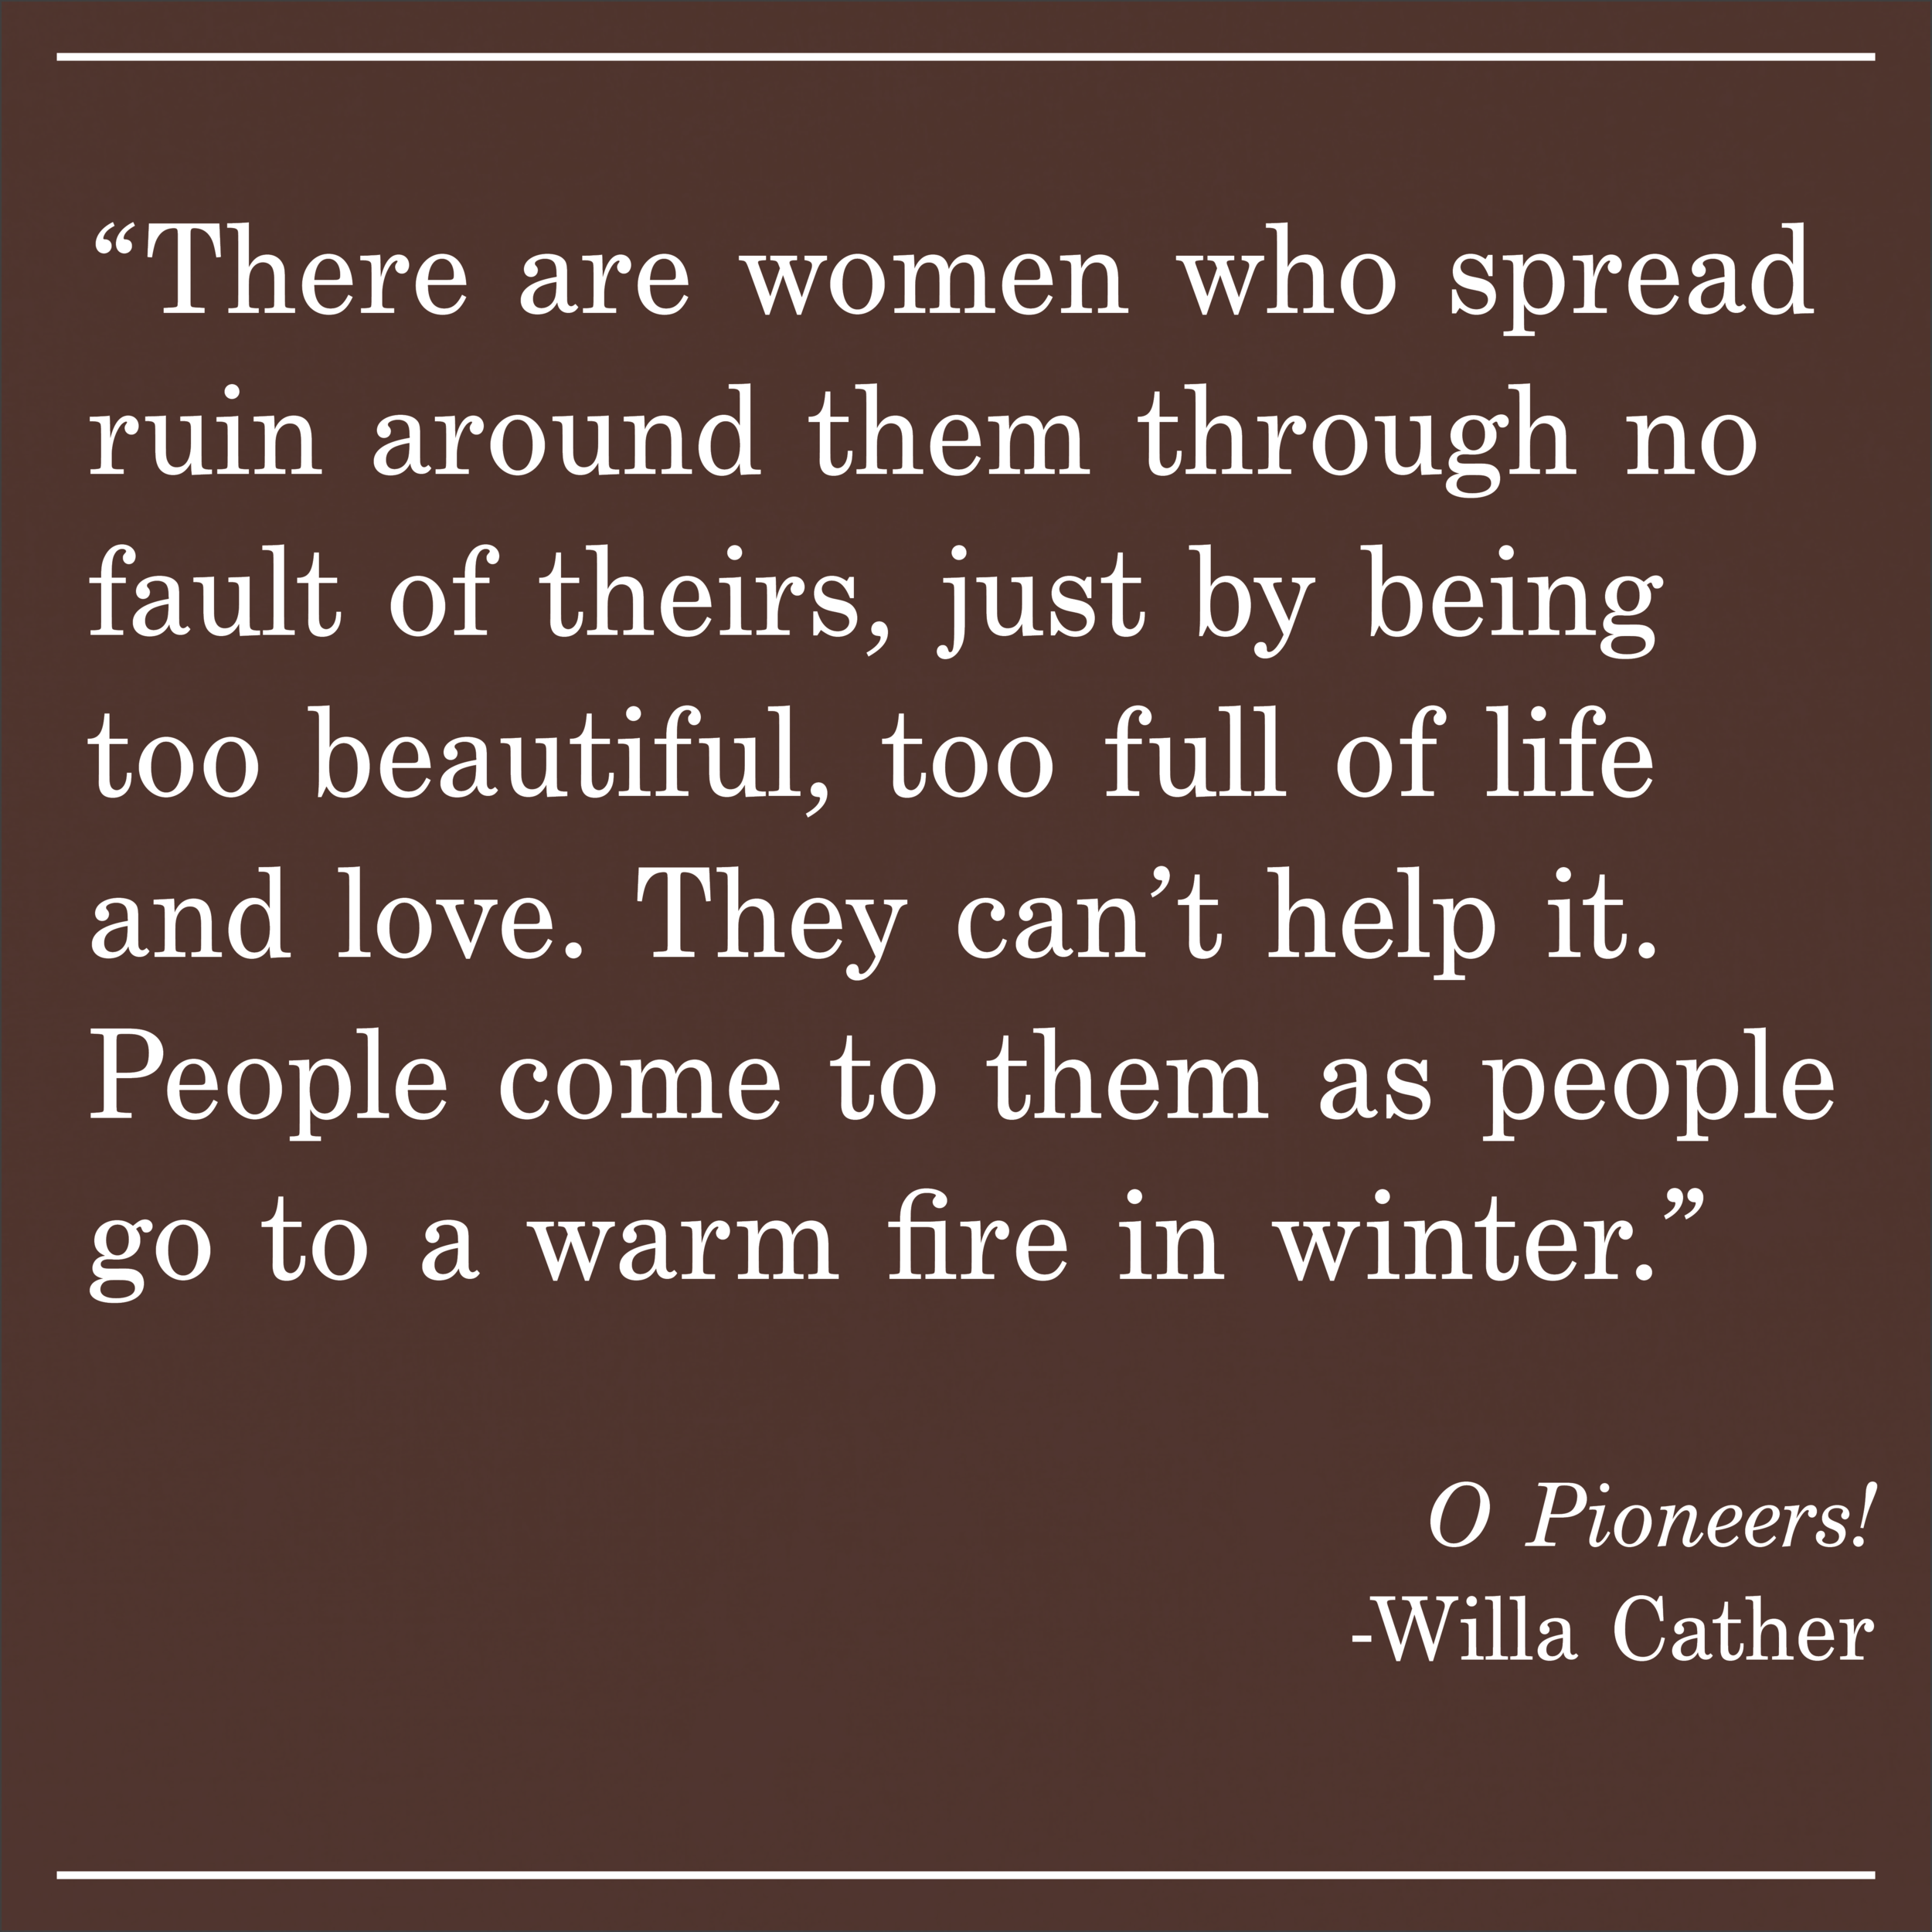 Daily Quote Willa Cather O Pioneers!